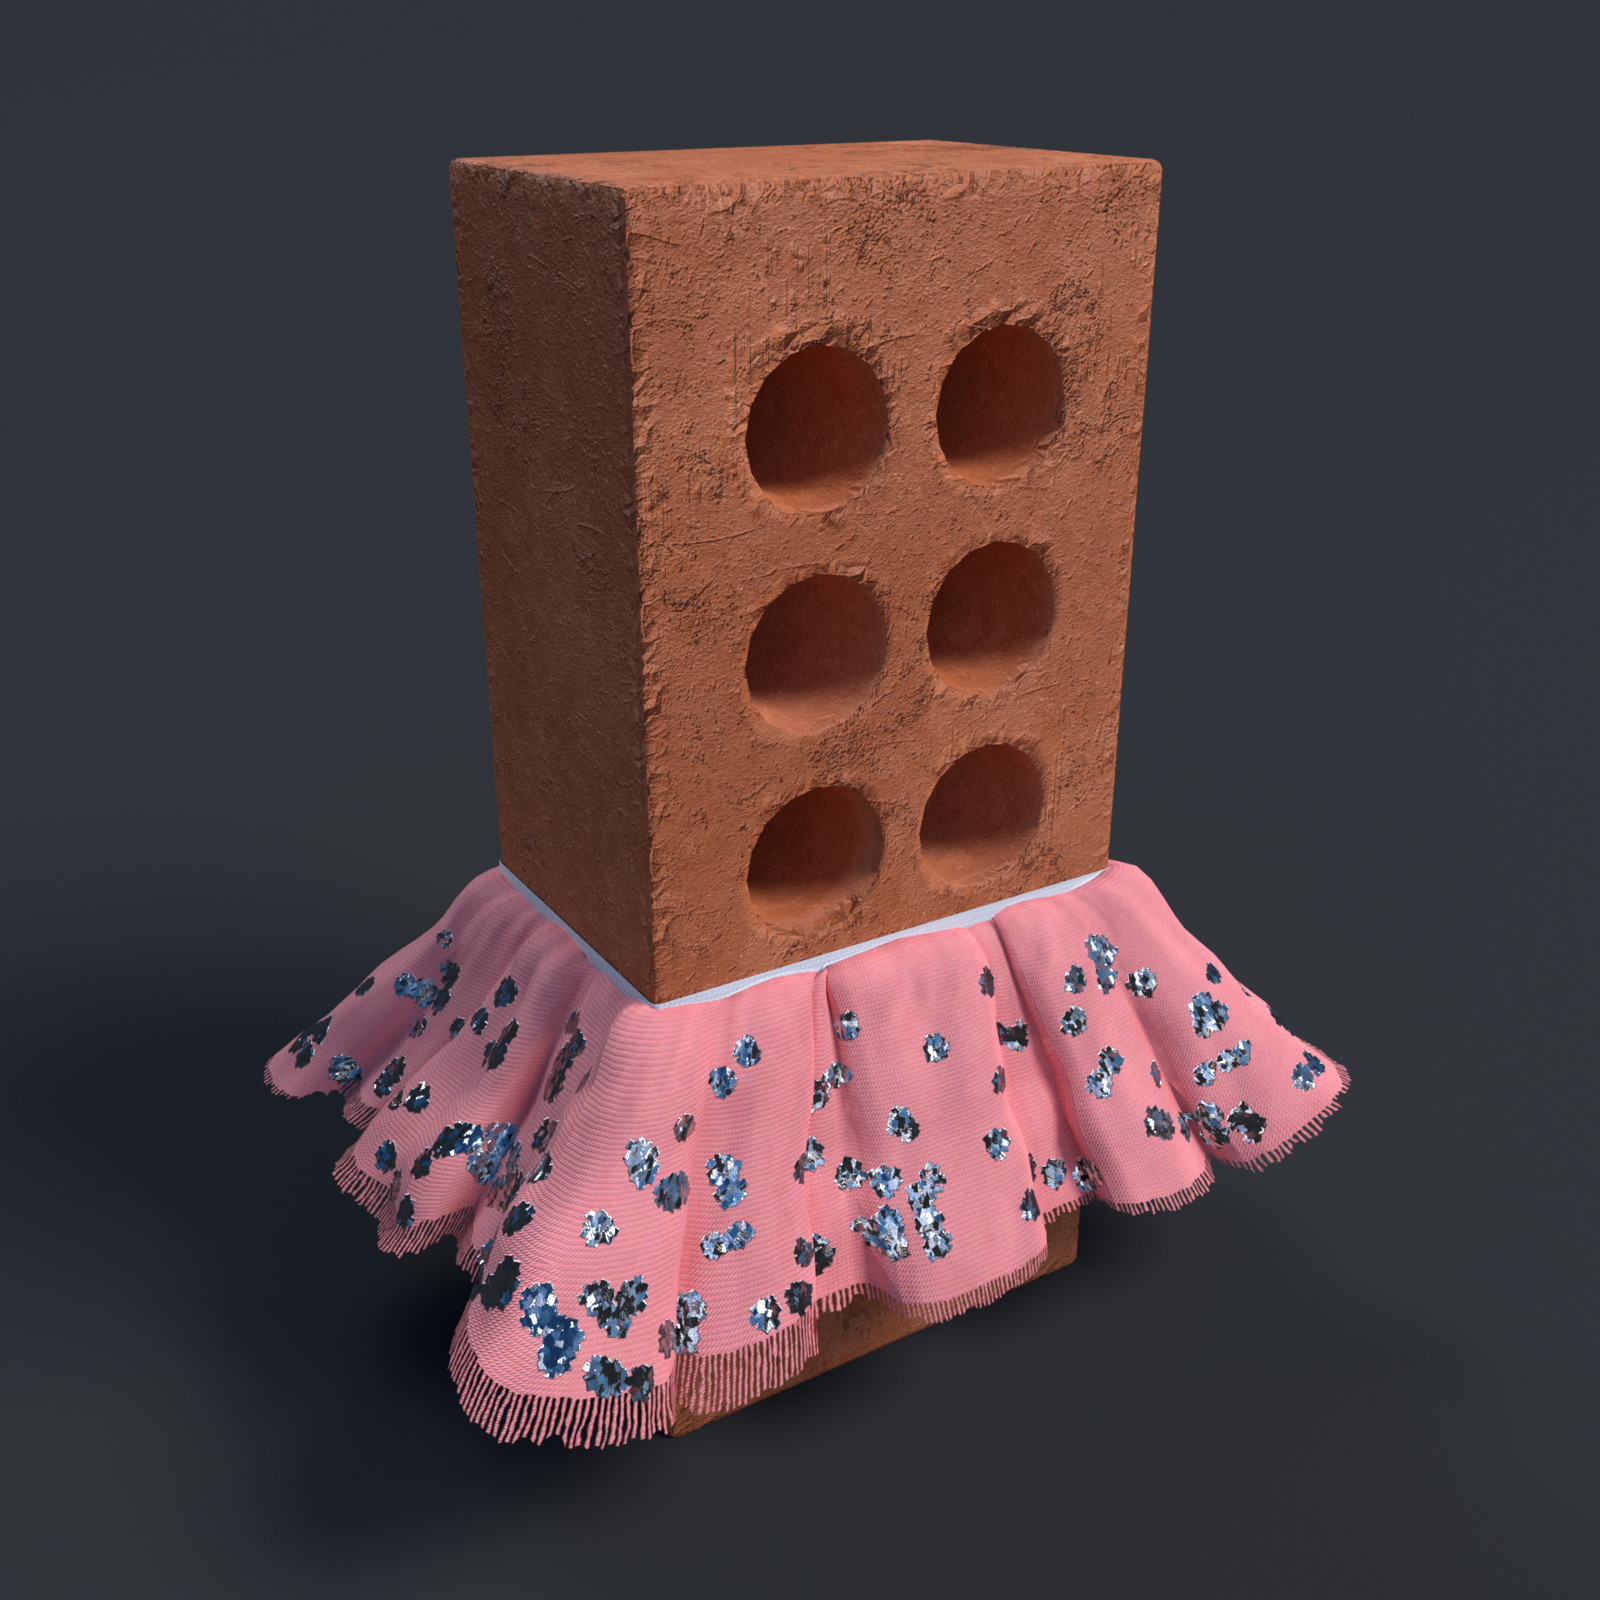 Trixie the Brick